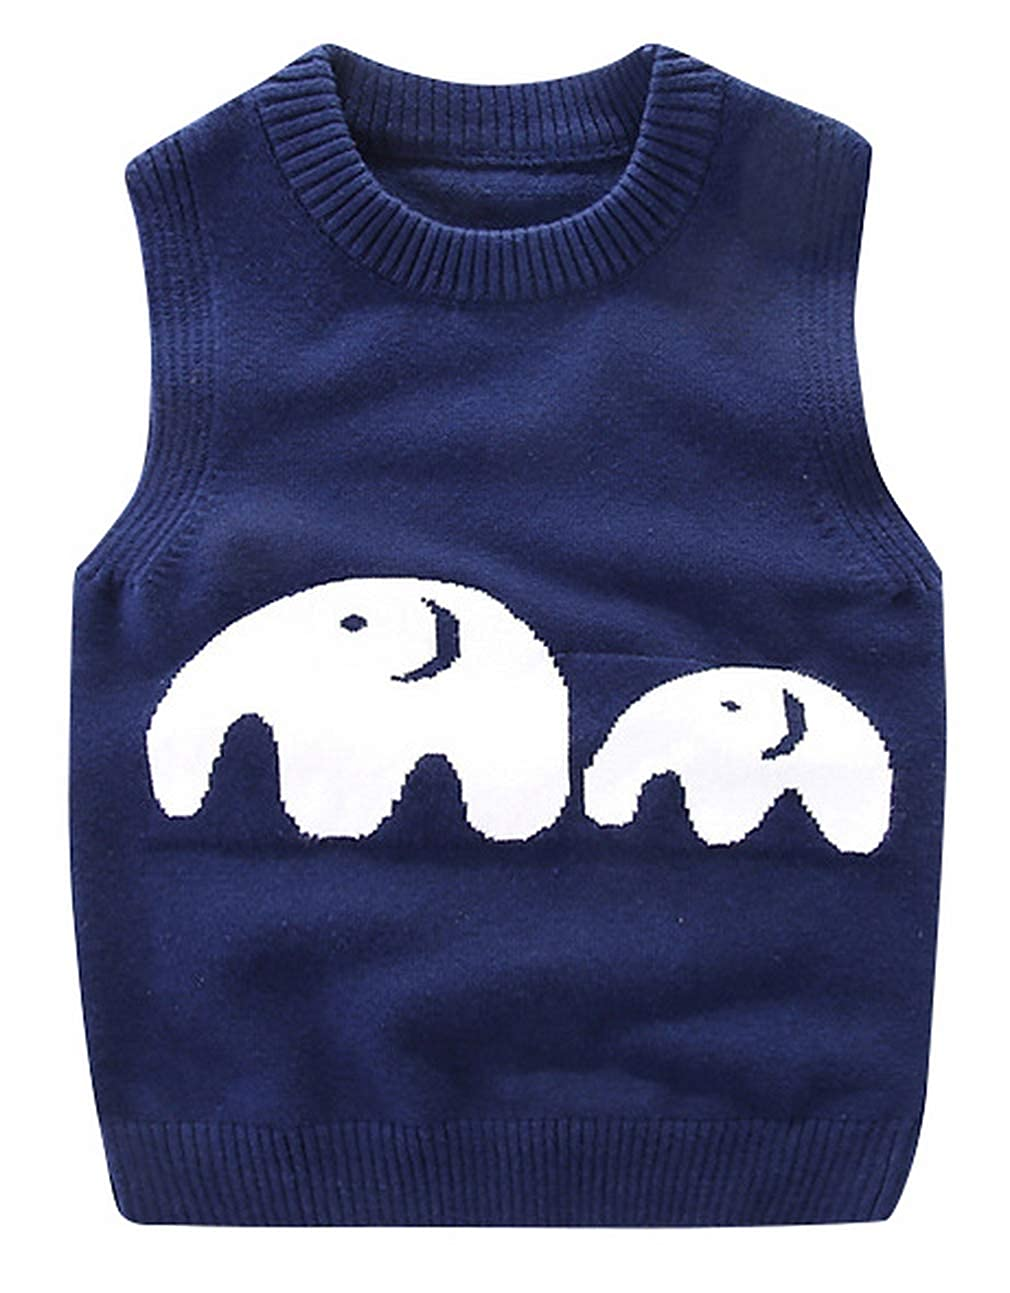 La Vogue Infant Boys Knitted Vest Sweater Cute Cartoon Casual Round Neck Sleeveless Jumpers Knitwear Tank Top